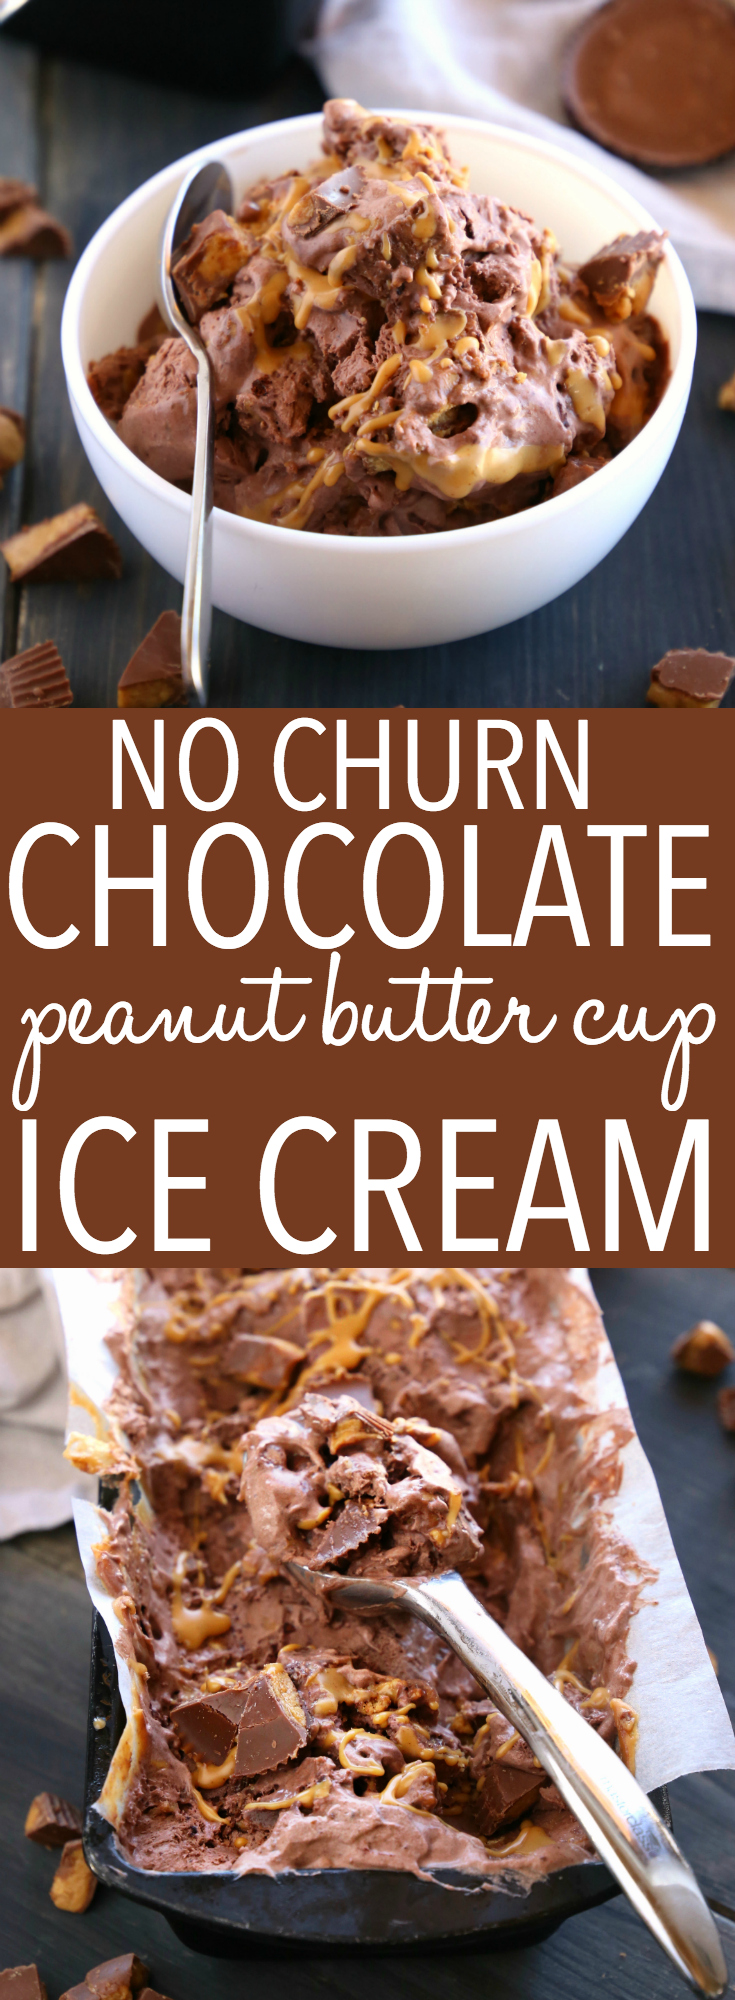 This No Churn Chocolate Peanut Butter Cup Ice Cream is the perfect cool treat for chocolate and peanut butter lovers! It's SO easy to make with only a few basic ingredients and it's the perfect ice cream for summer! Recipe from thebusybaker.ca! #chocolateicecream #peanutbuttericecream #nochurnicecream #homemadeicecream via @busybakerblog